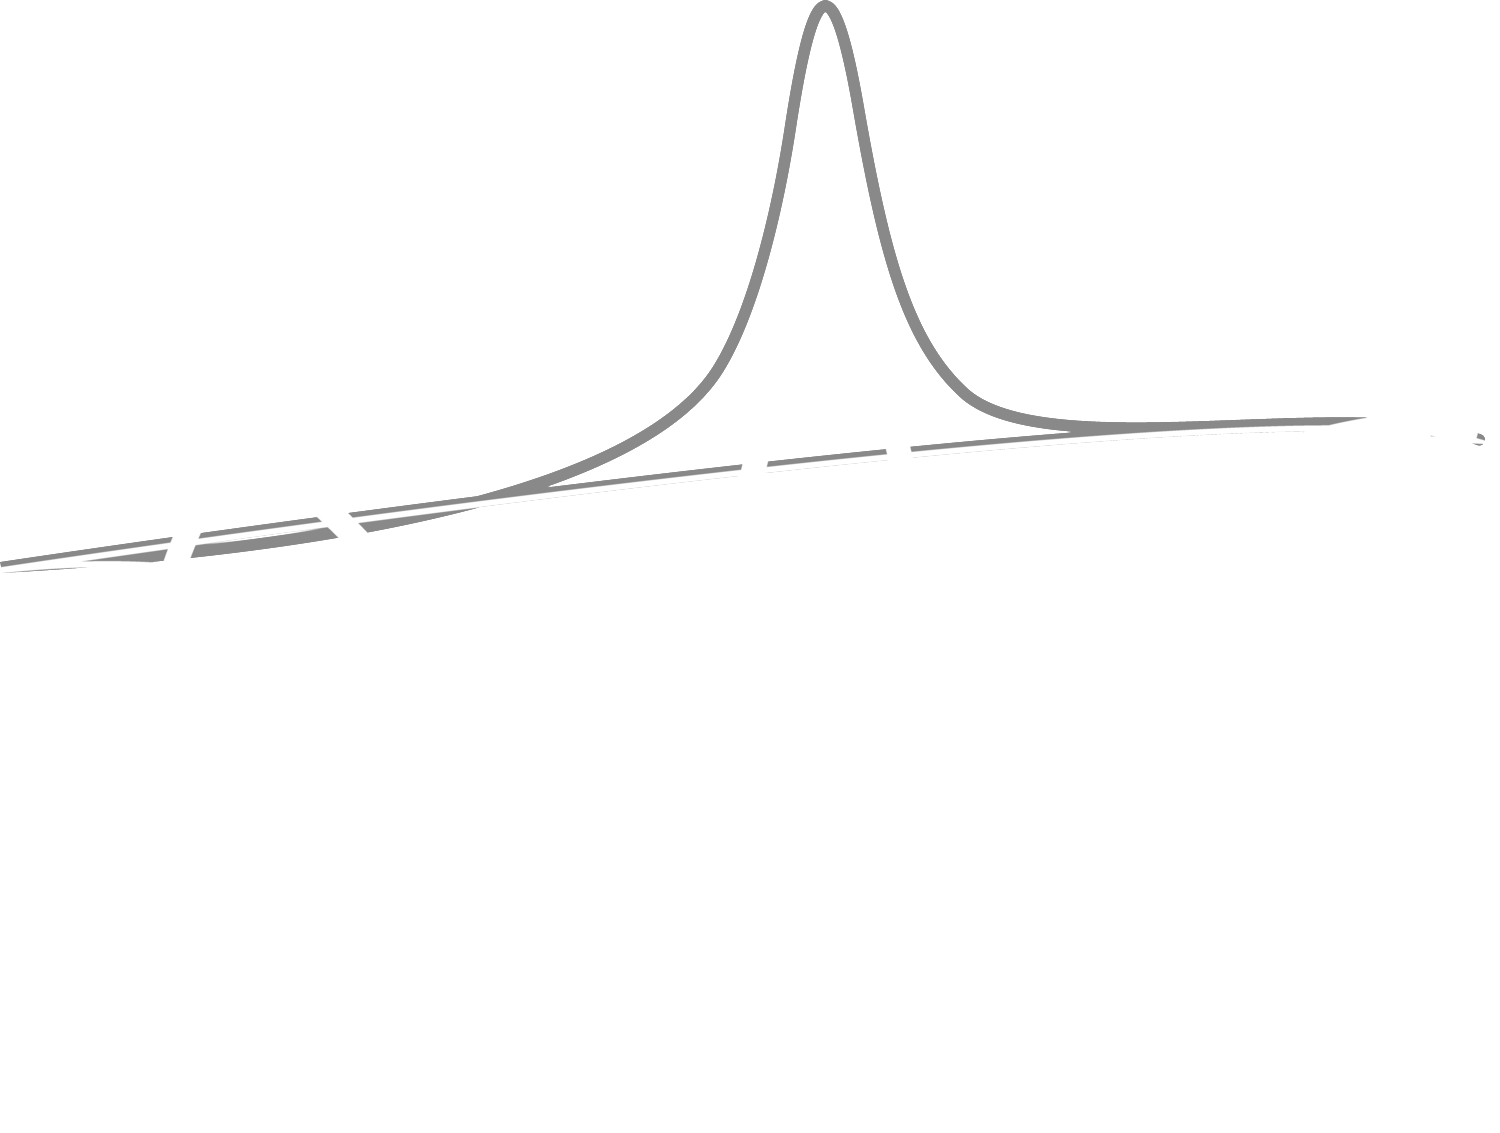 Martin Lucy